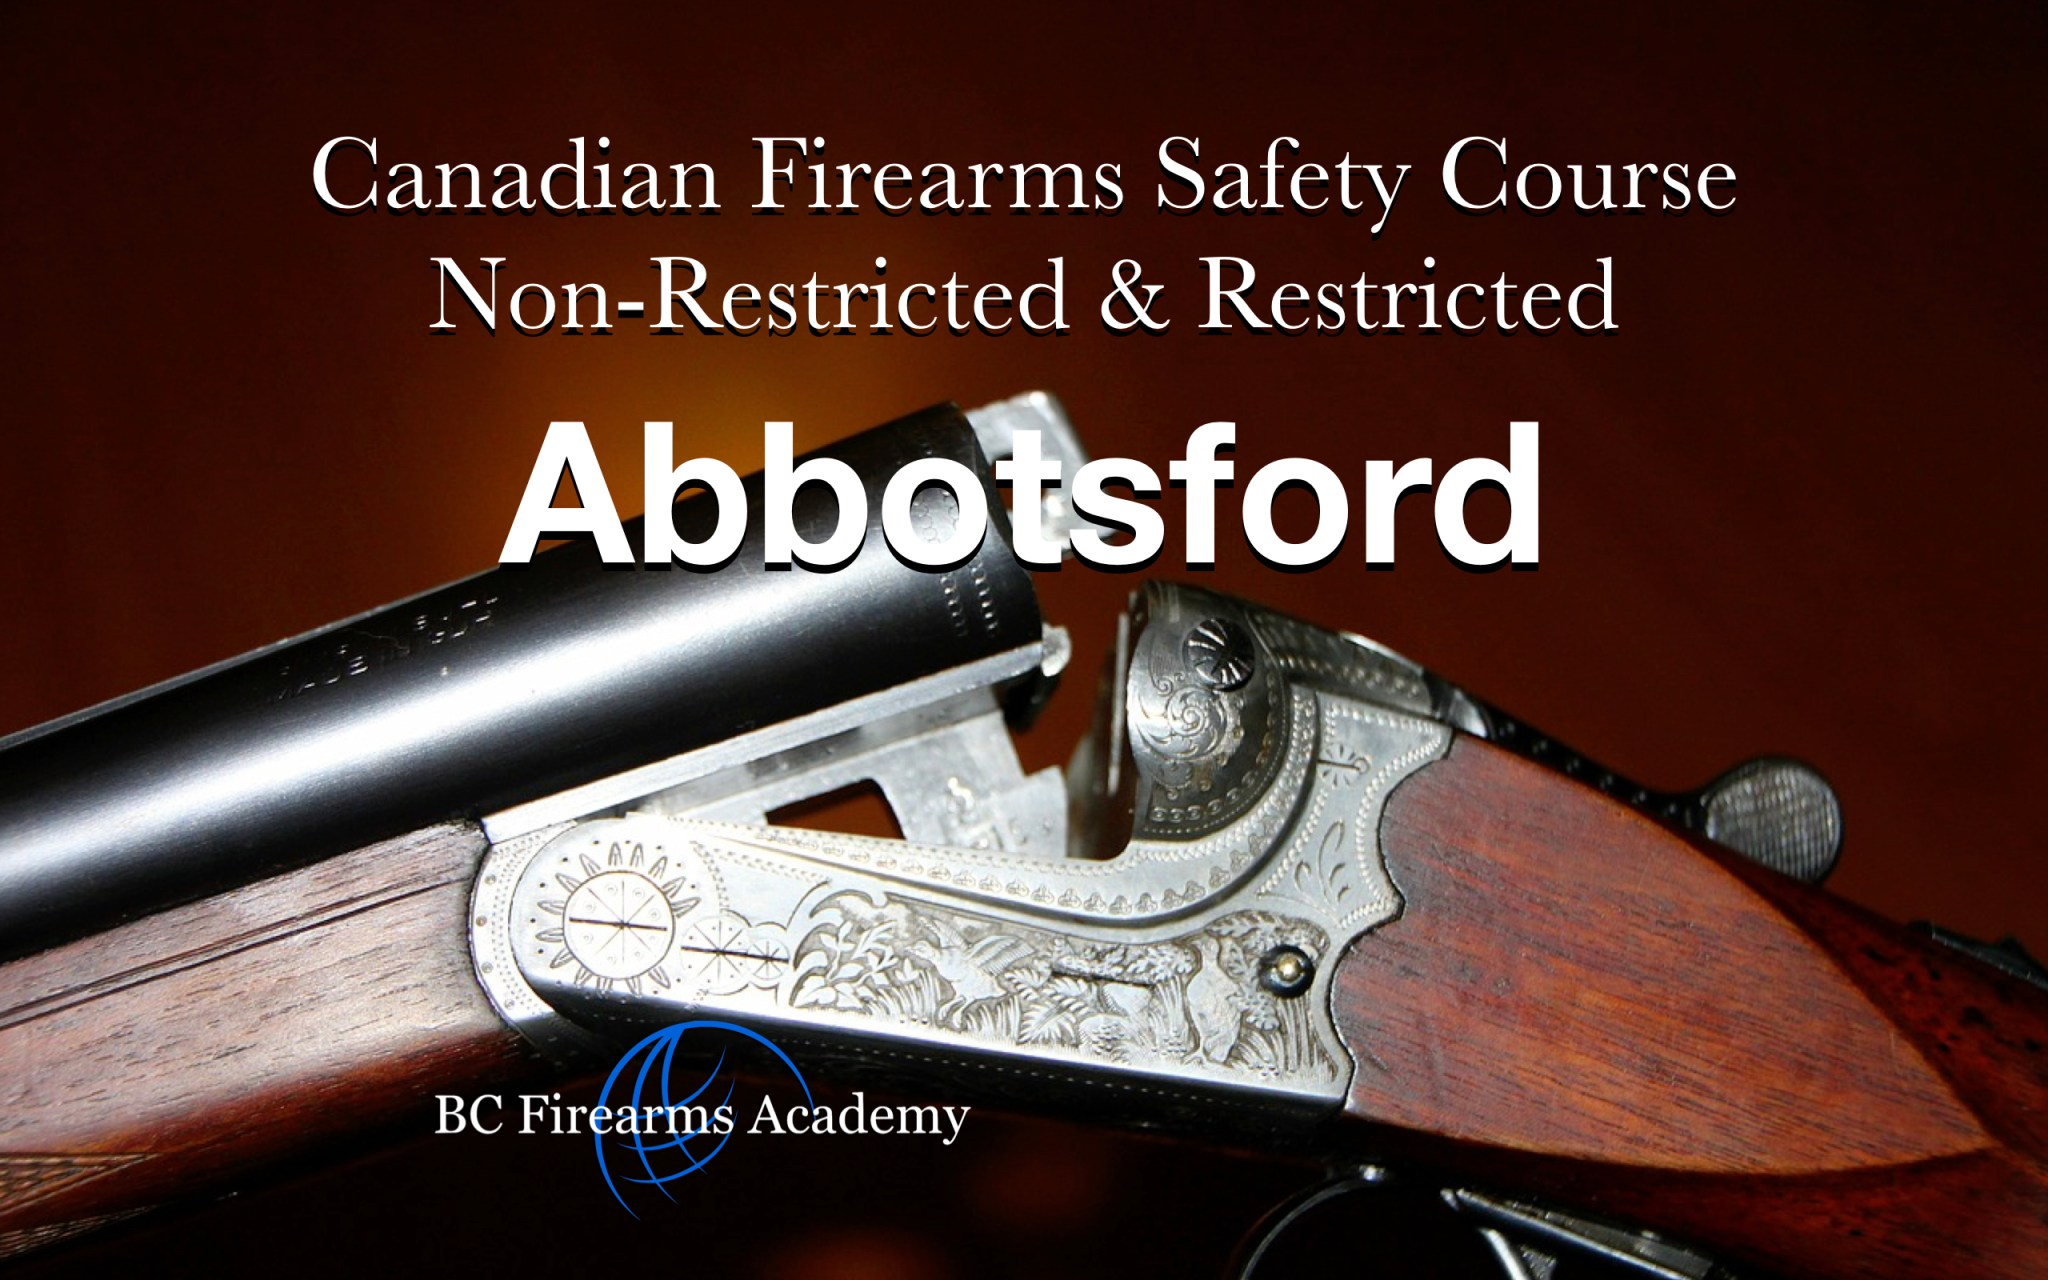 PAL (CFSC/CRFSC) – Canadian Firearms Safety Course & Canadian Restricted Firearms Safety Course Dec 29/30